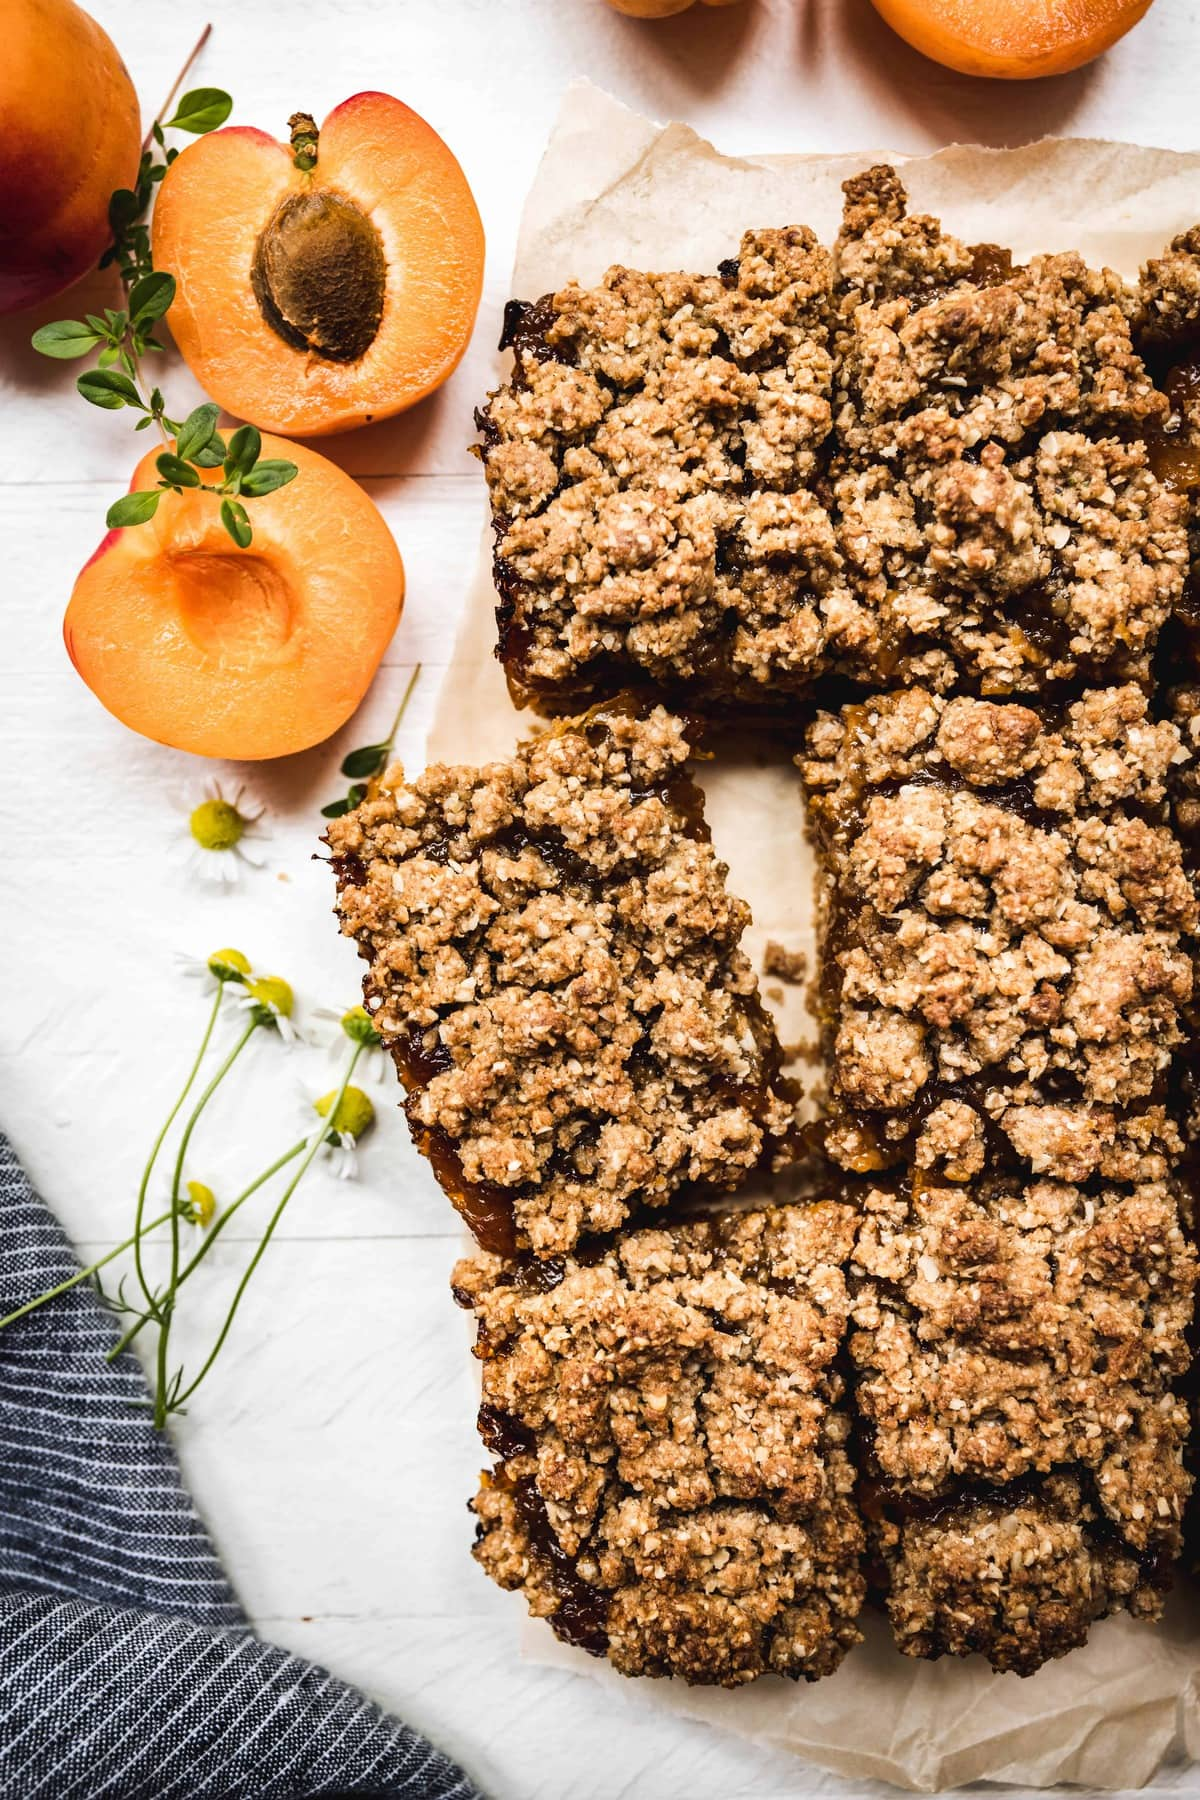 Overhead view of sliced vegan and gluten free apricot oat bars on parchment paper